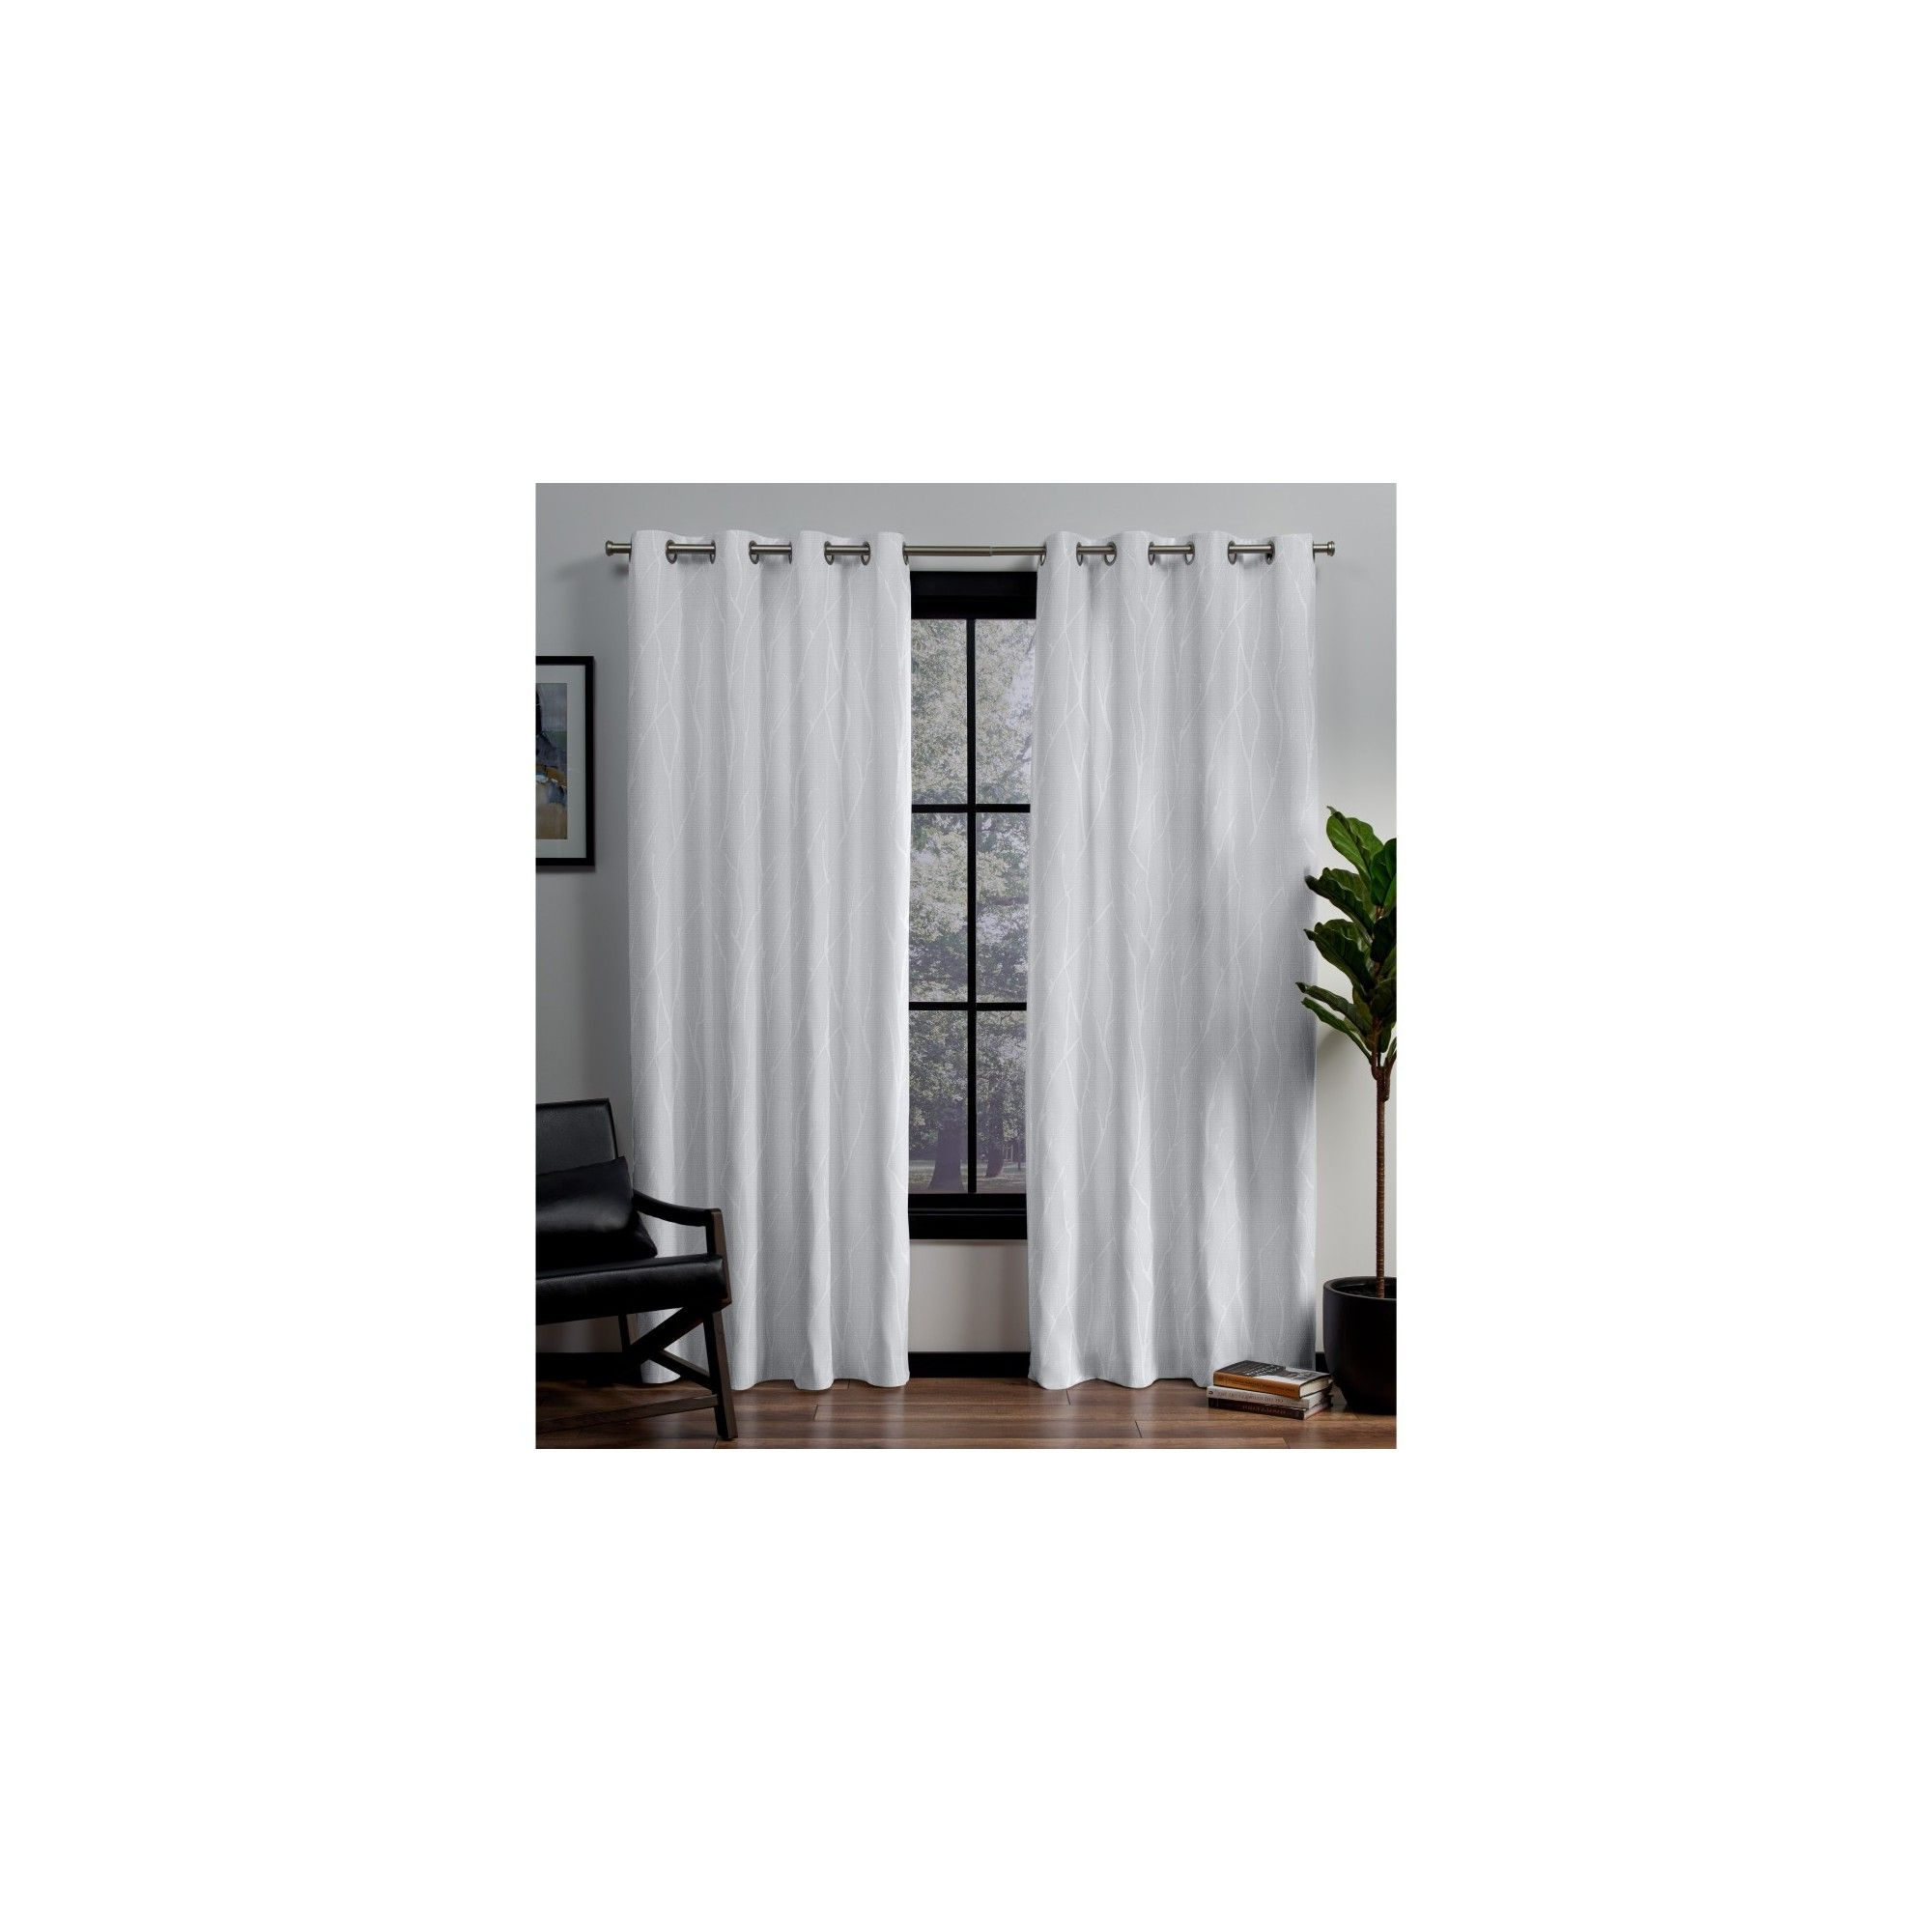 """Forest Hill Woven Blackout Grommet Top Curtain Panel Pairs For Most Current 52""""x84"""" Forest Hill Woven Blackout Grommet Top Window (View 17 of 20)"""